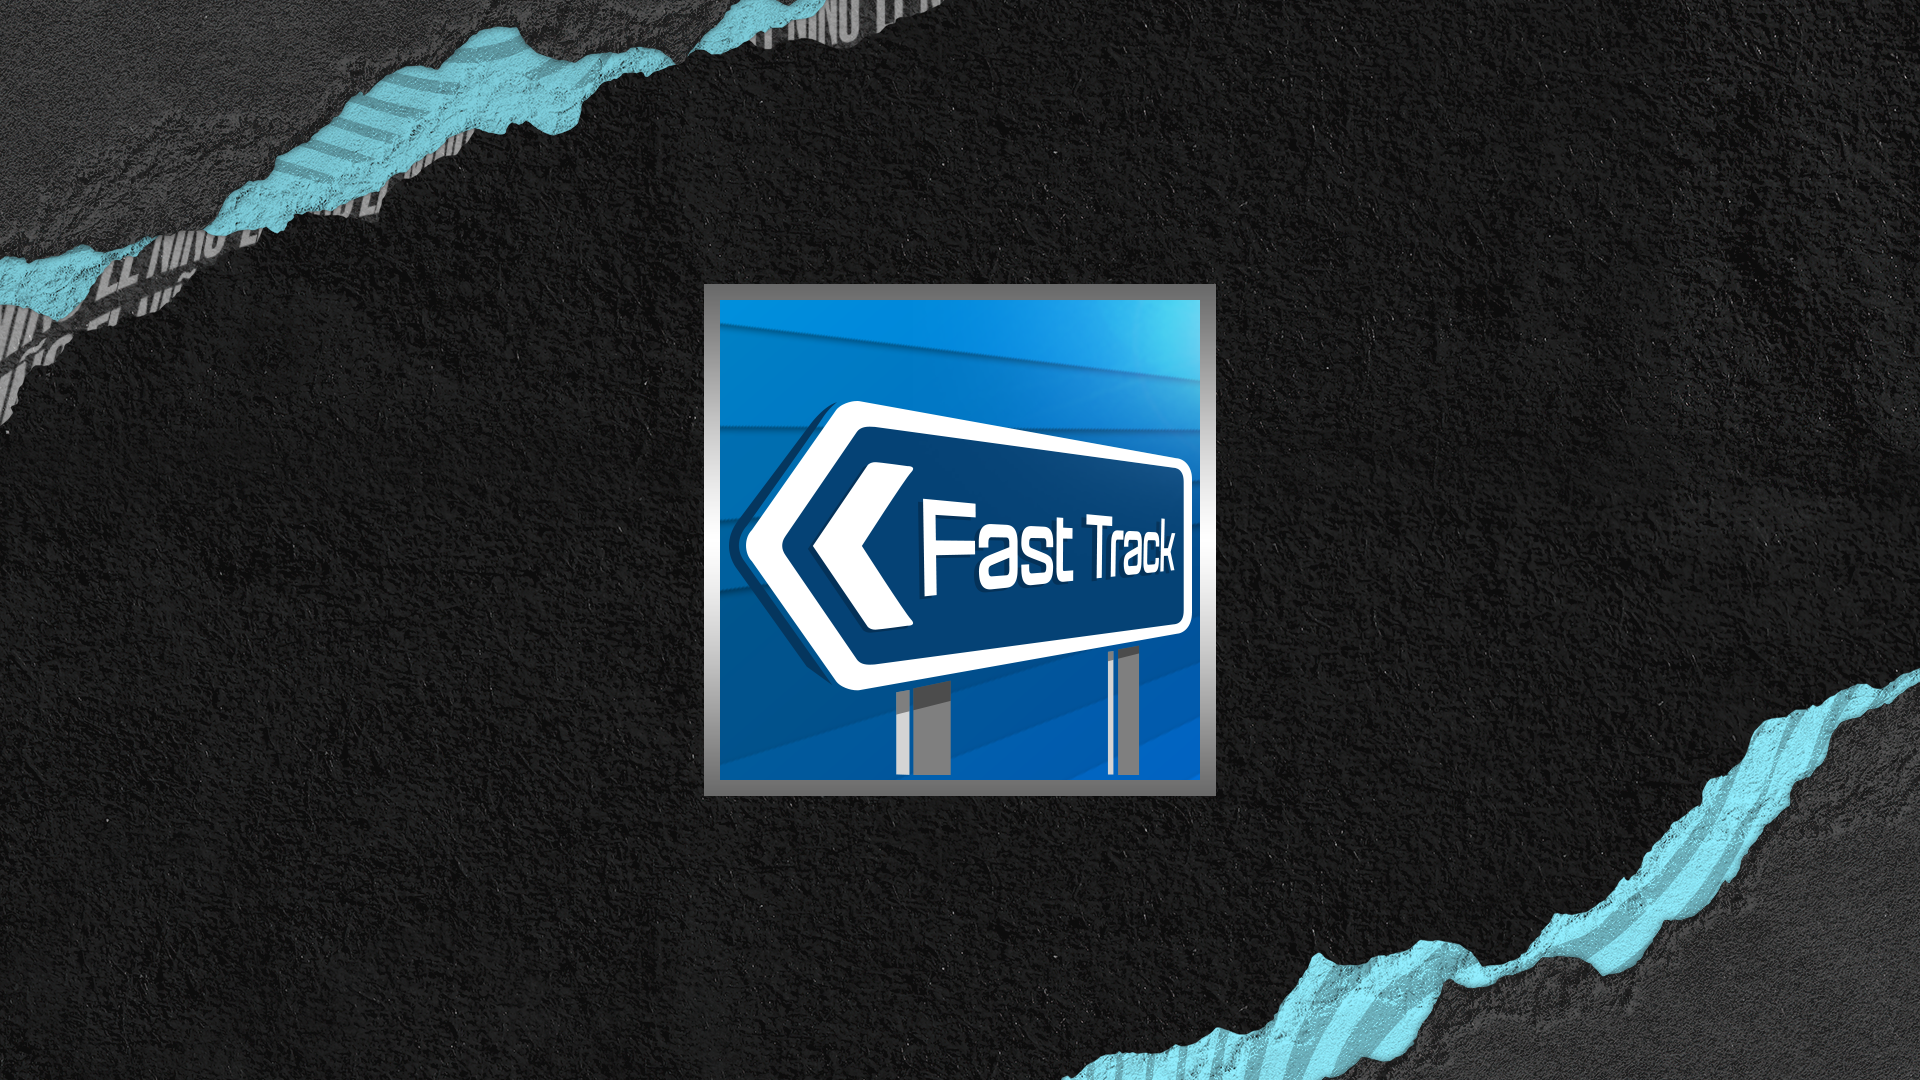 Icon for Fast Track